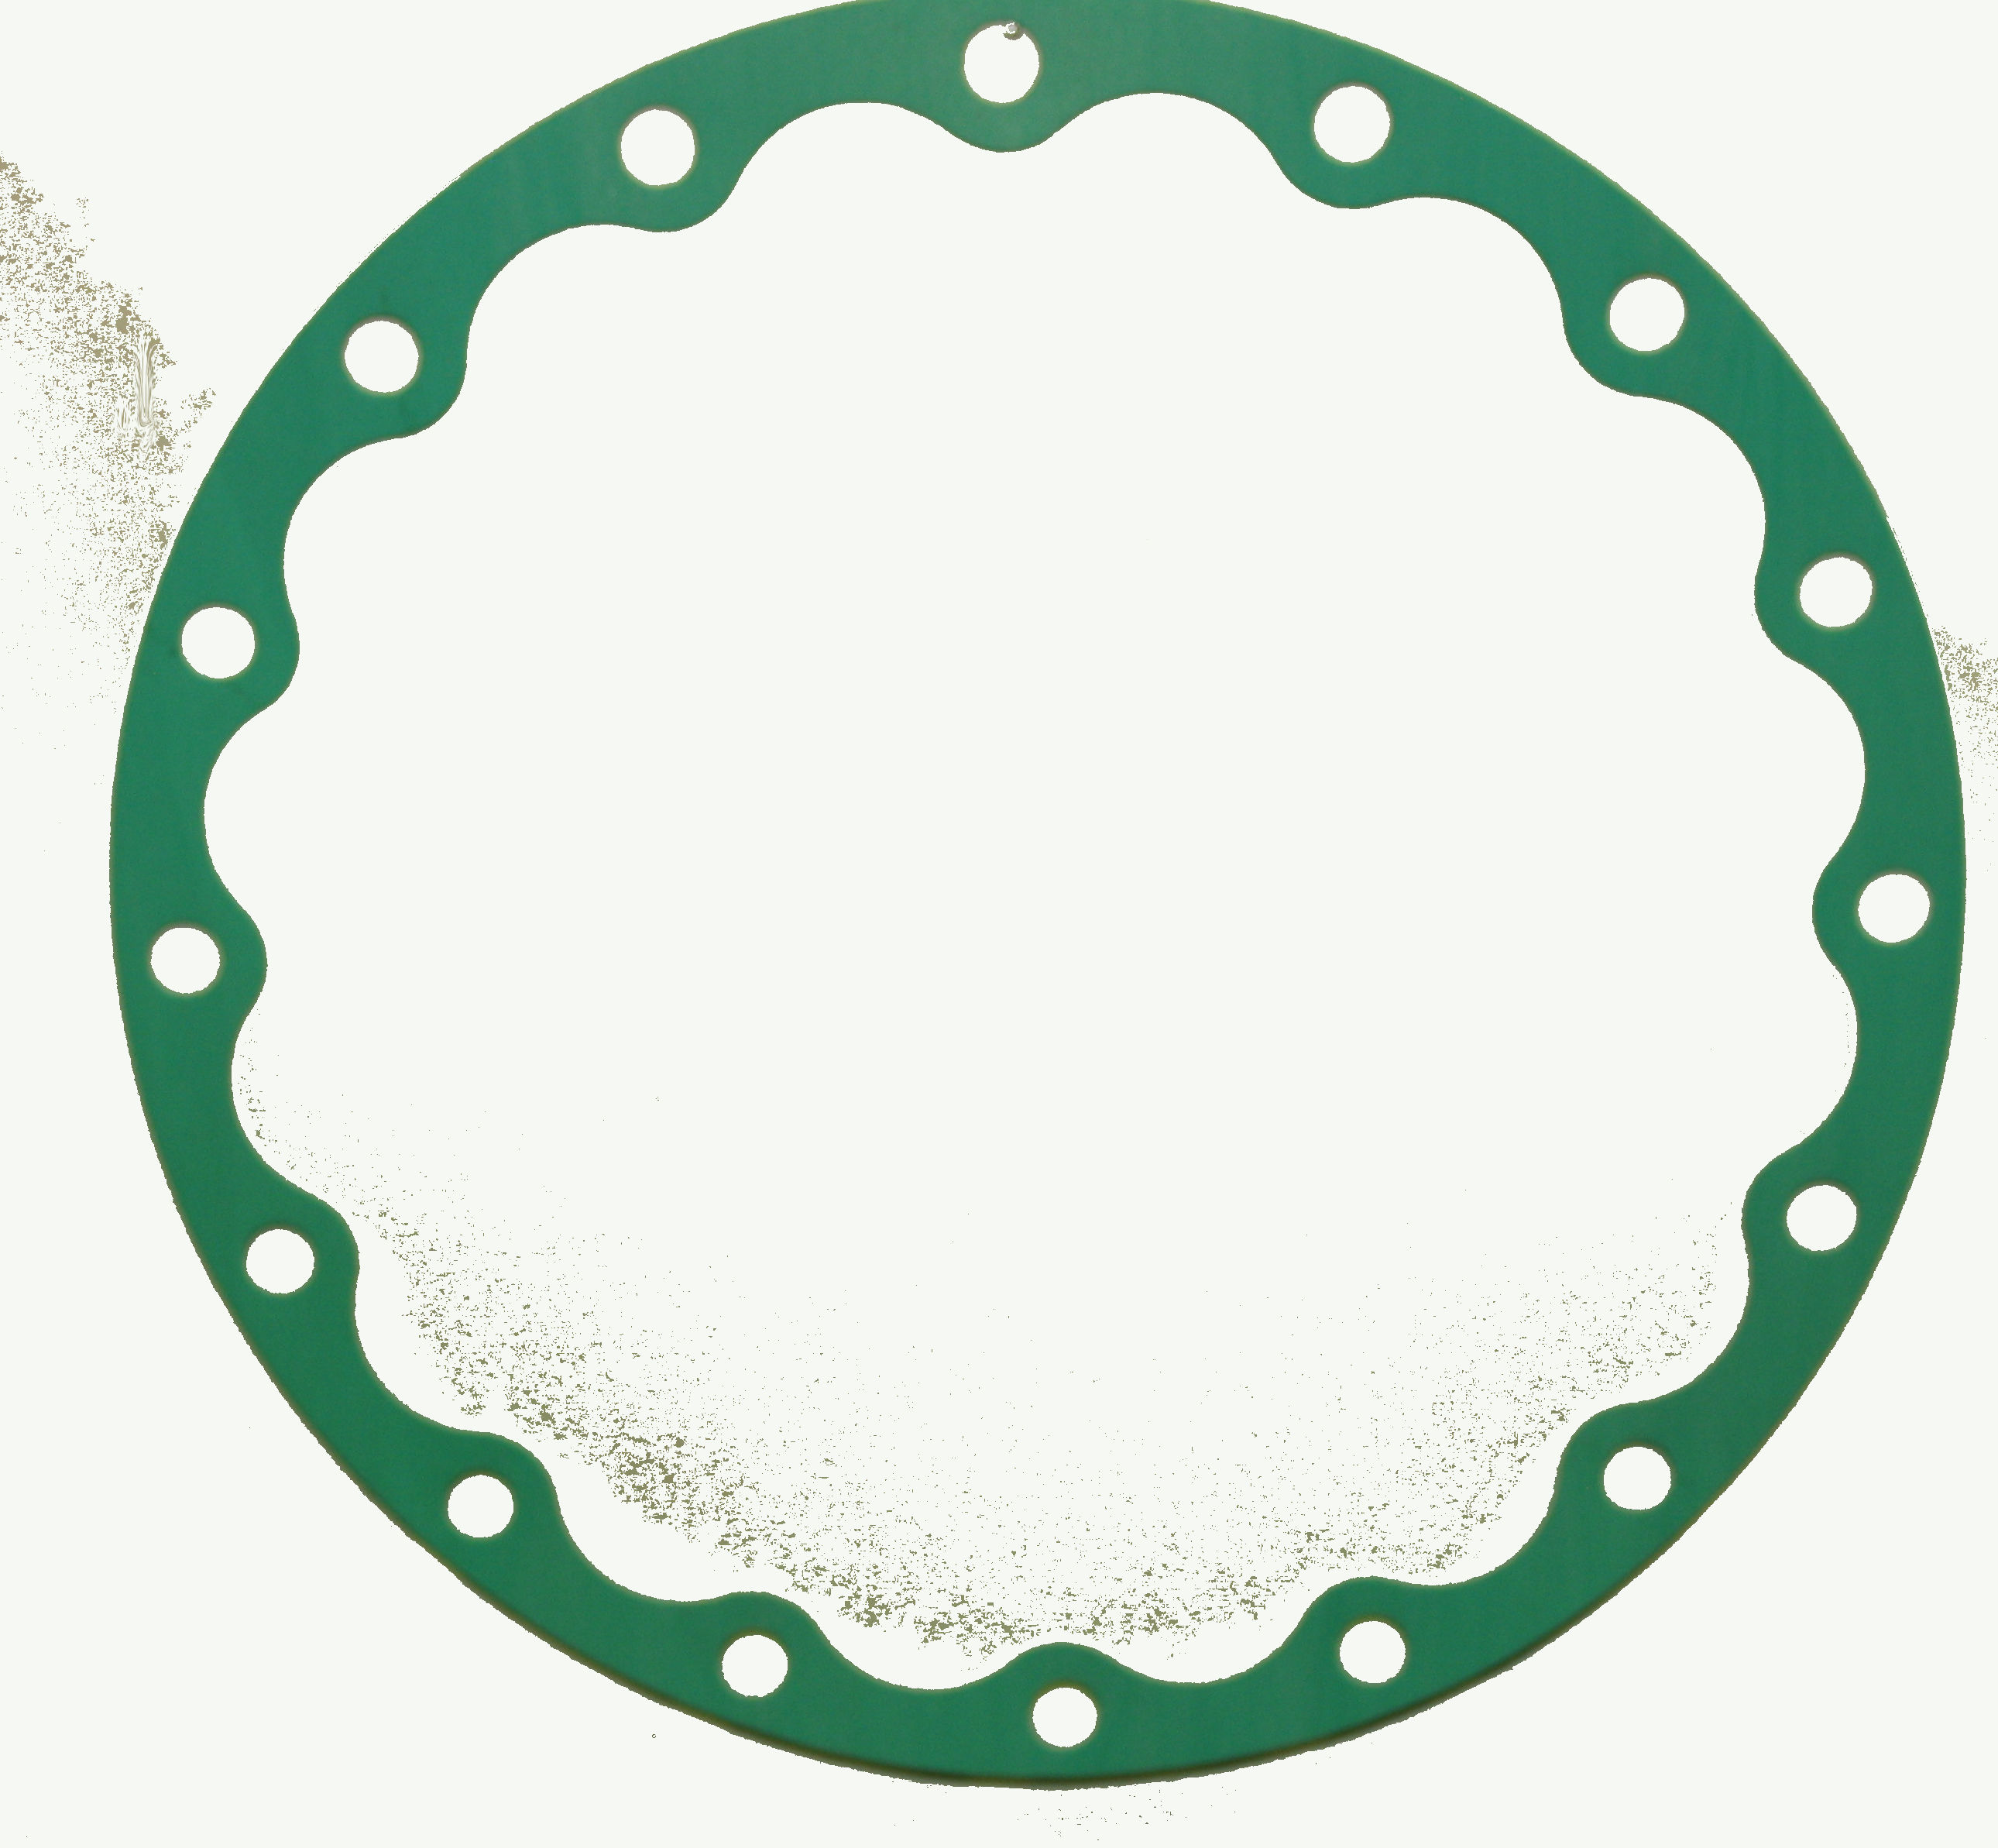 GKT-6377 Gasket; Suction Cover; R/N GKT-912 (Made in the USA)